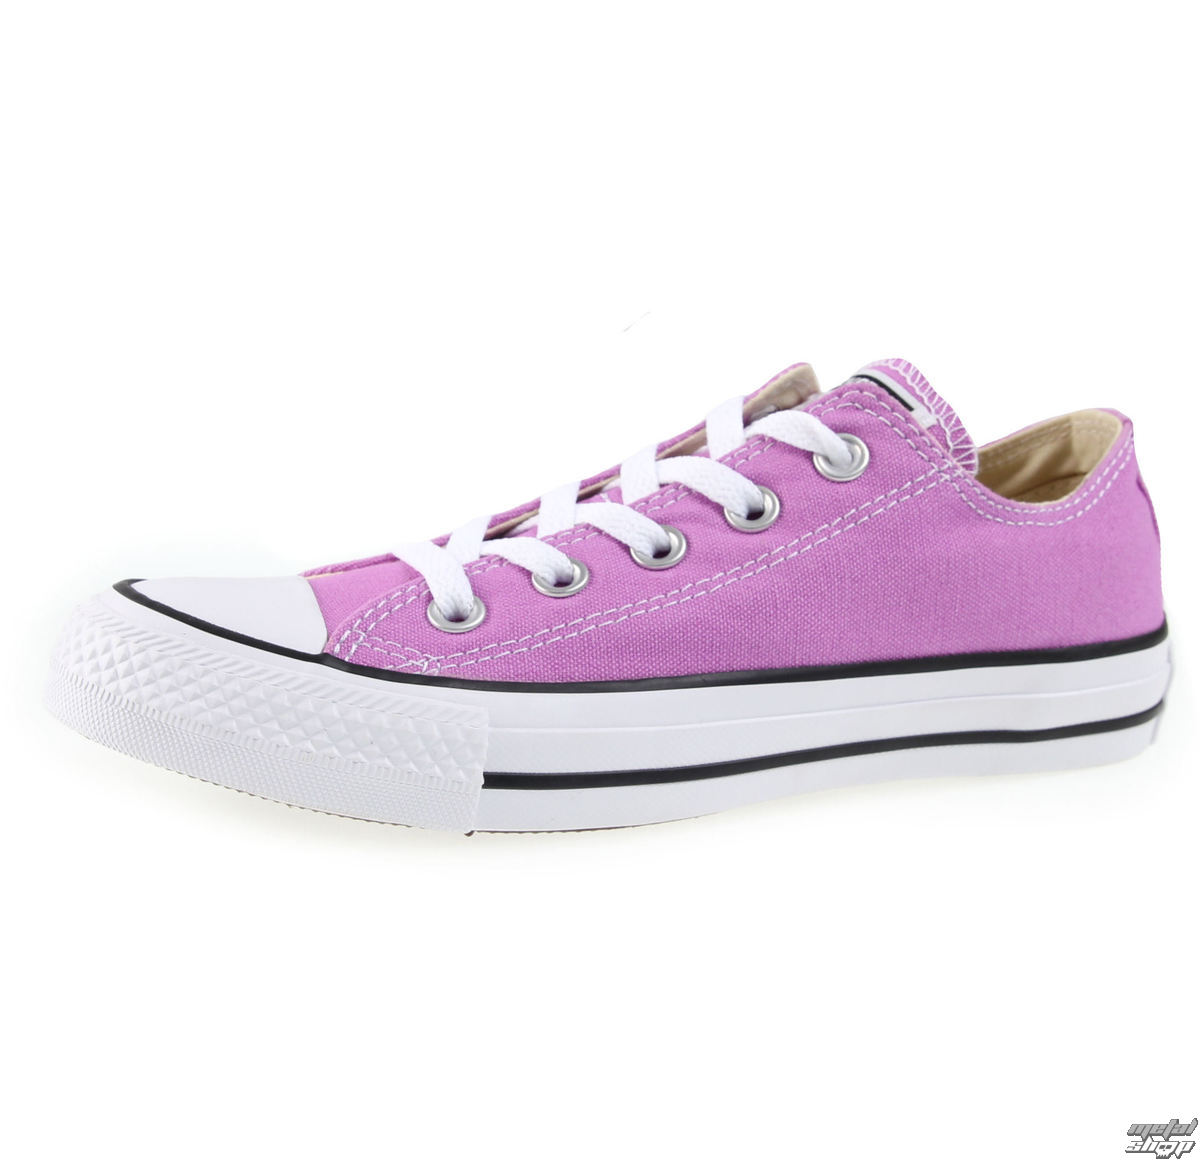 topánky CONVERSE - Chuck Taylor All Star - C155576